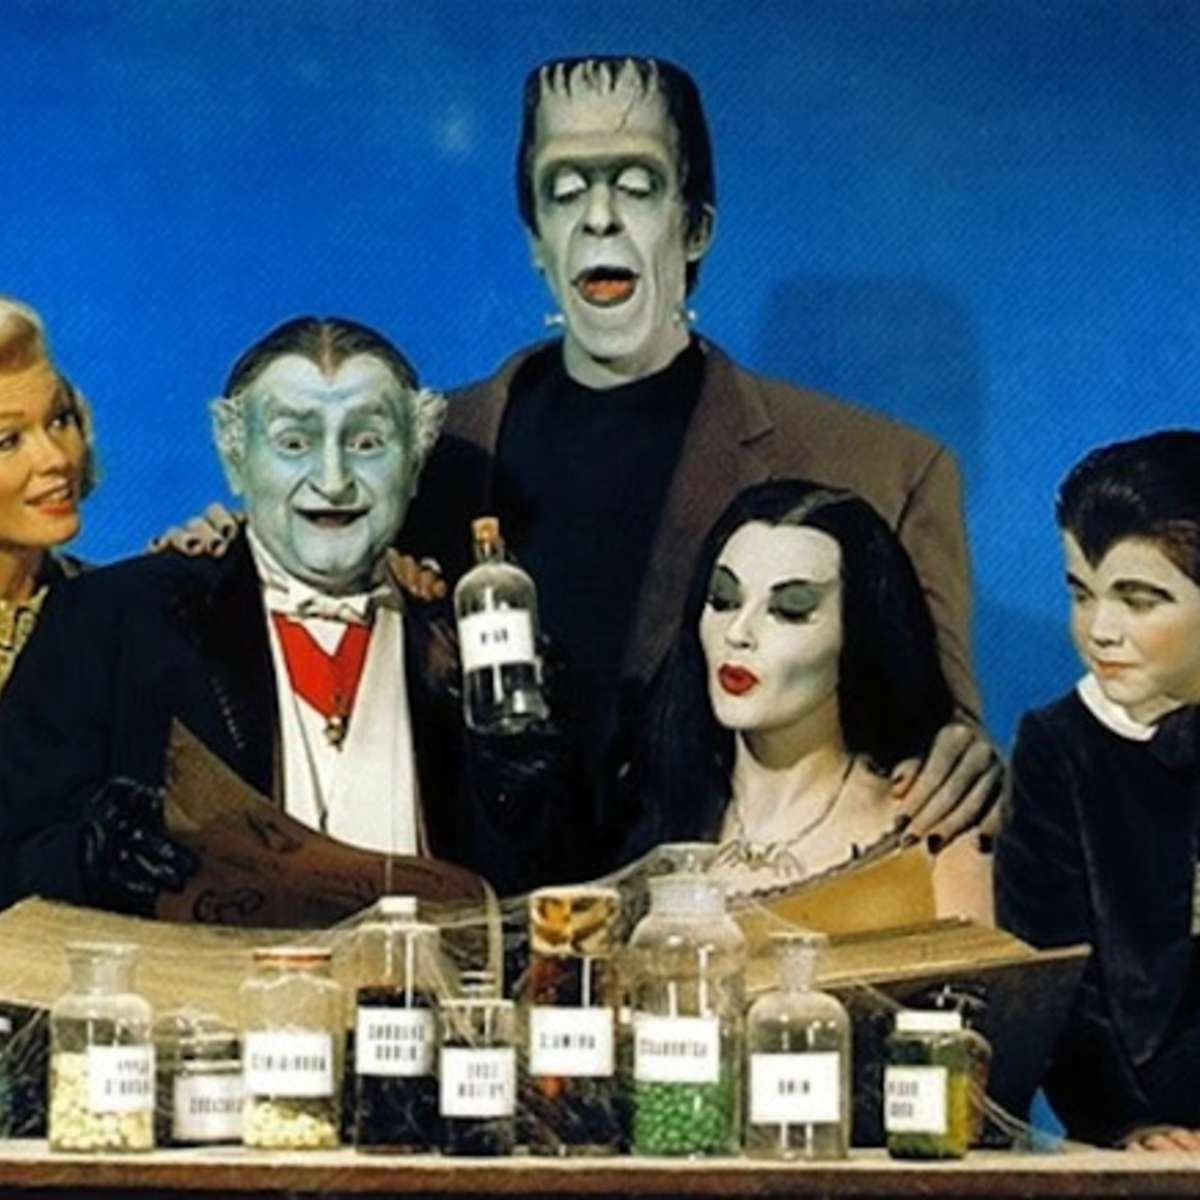 munsters_color_0.jpg